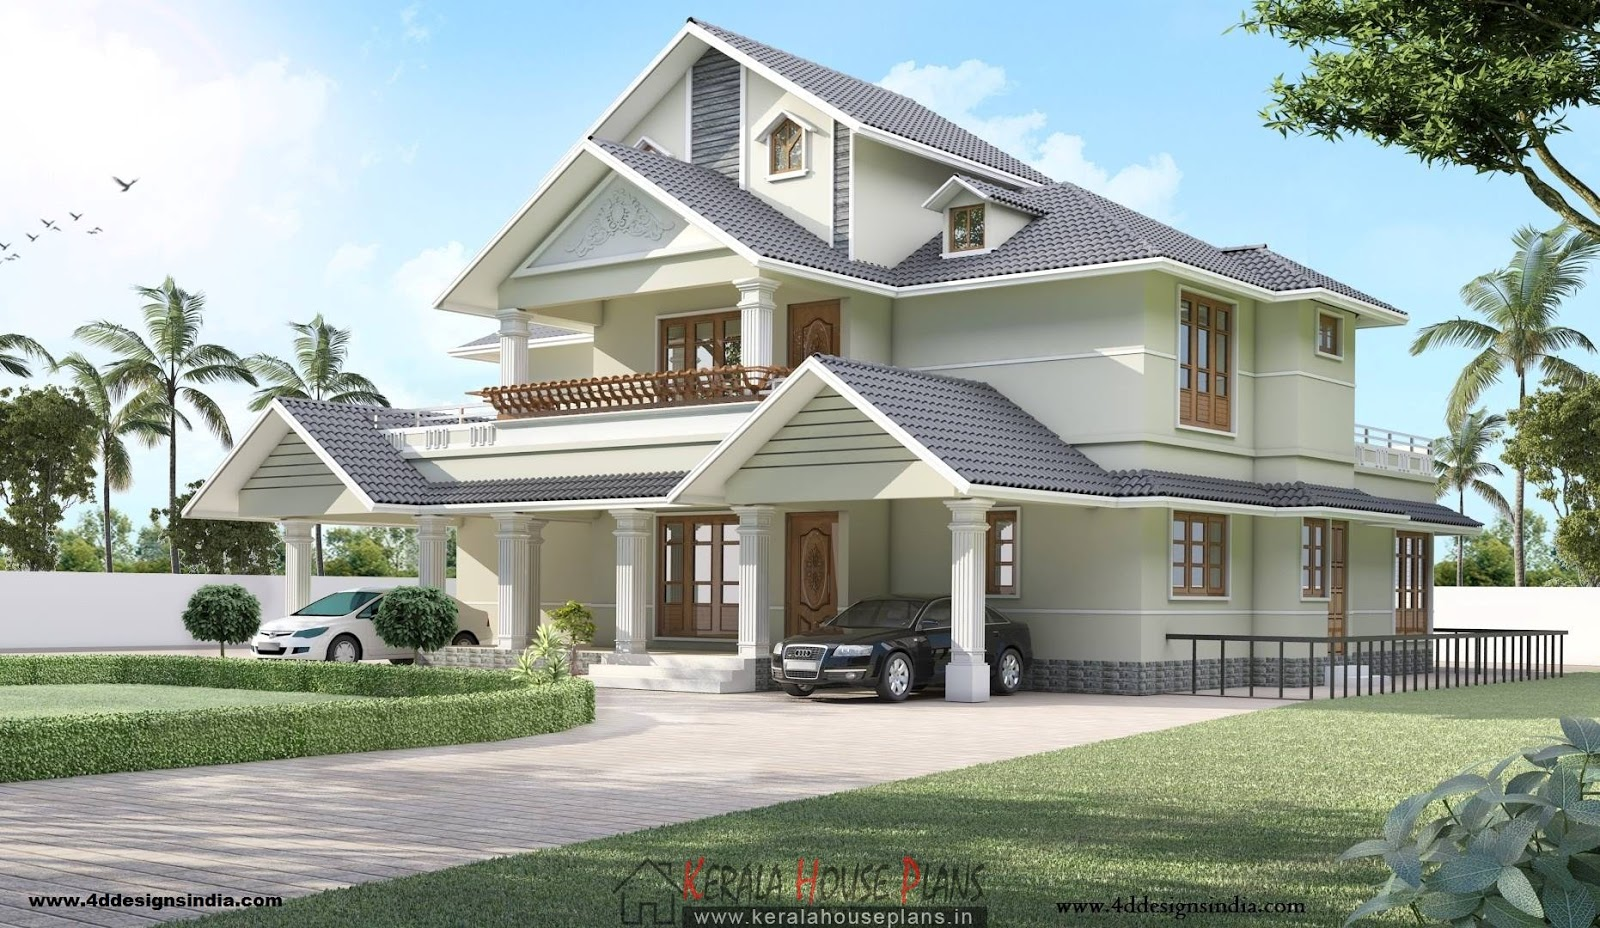 Kerala Home Designs Photos In Double Floor Of Double Floor Kerala House Design With Interior Photos